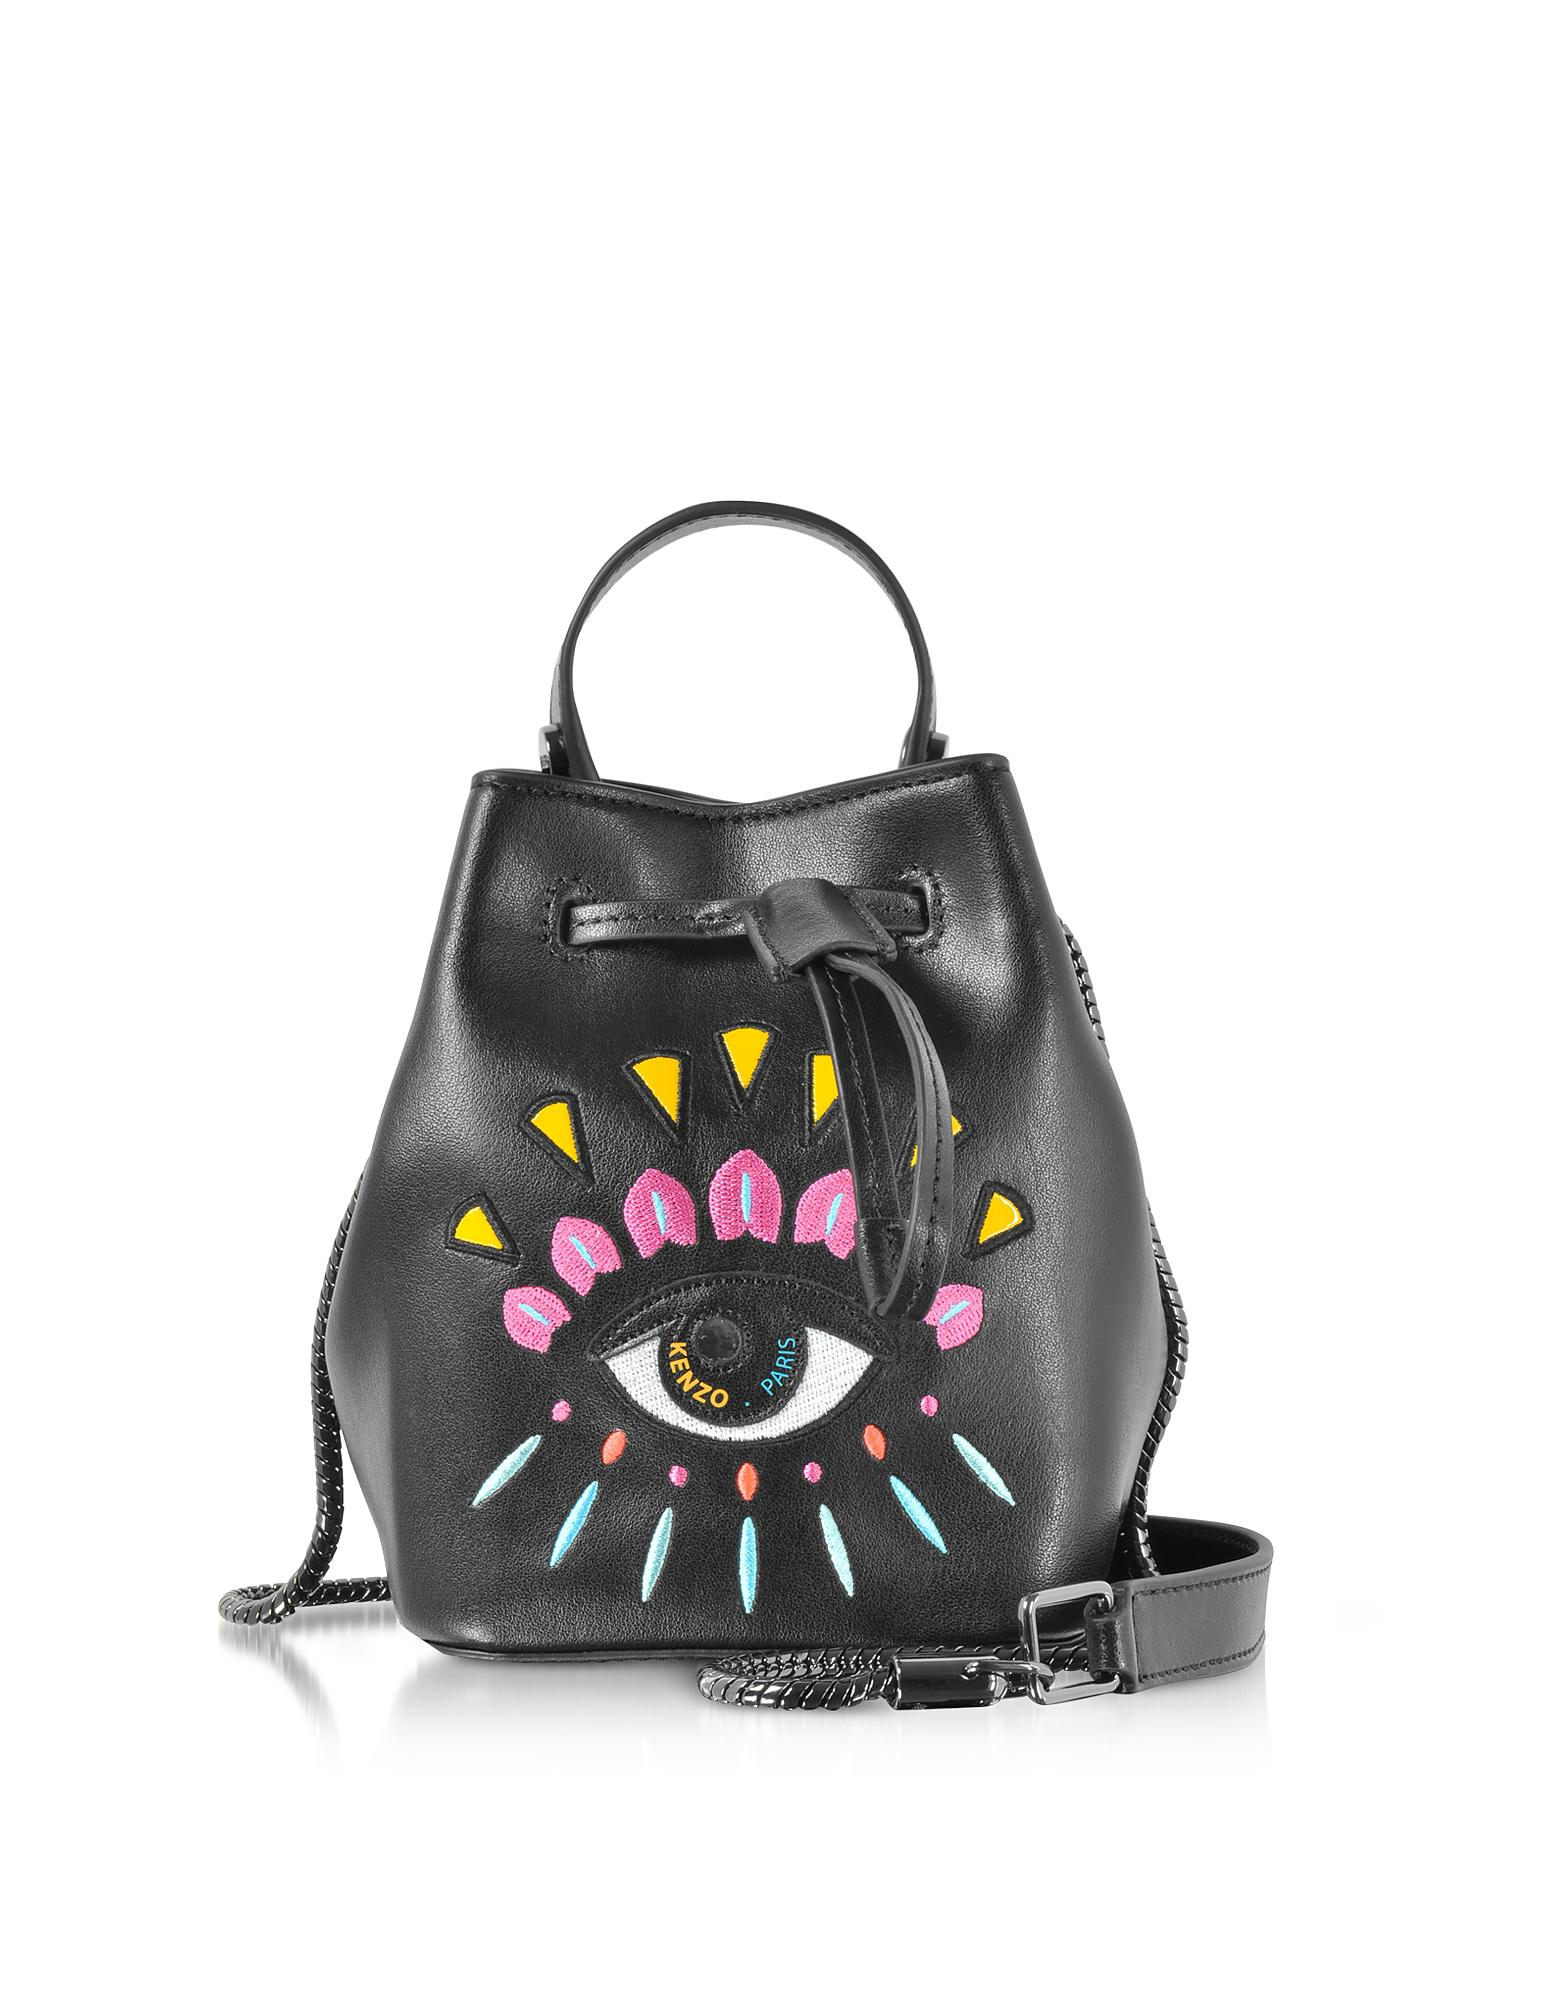 0ce30455aa KENZO Black Leather Mini Eye Bucket Bag in Black - Lyst